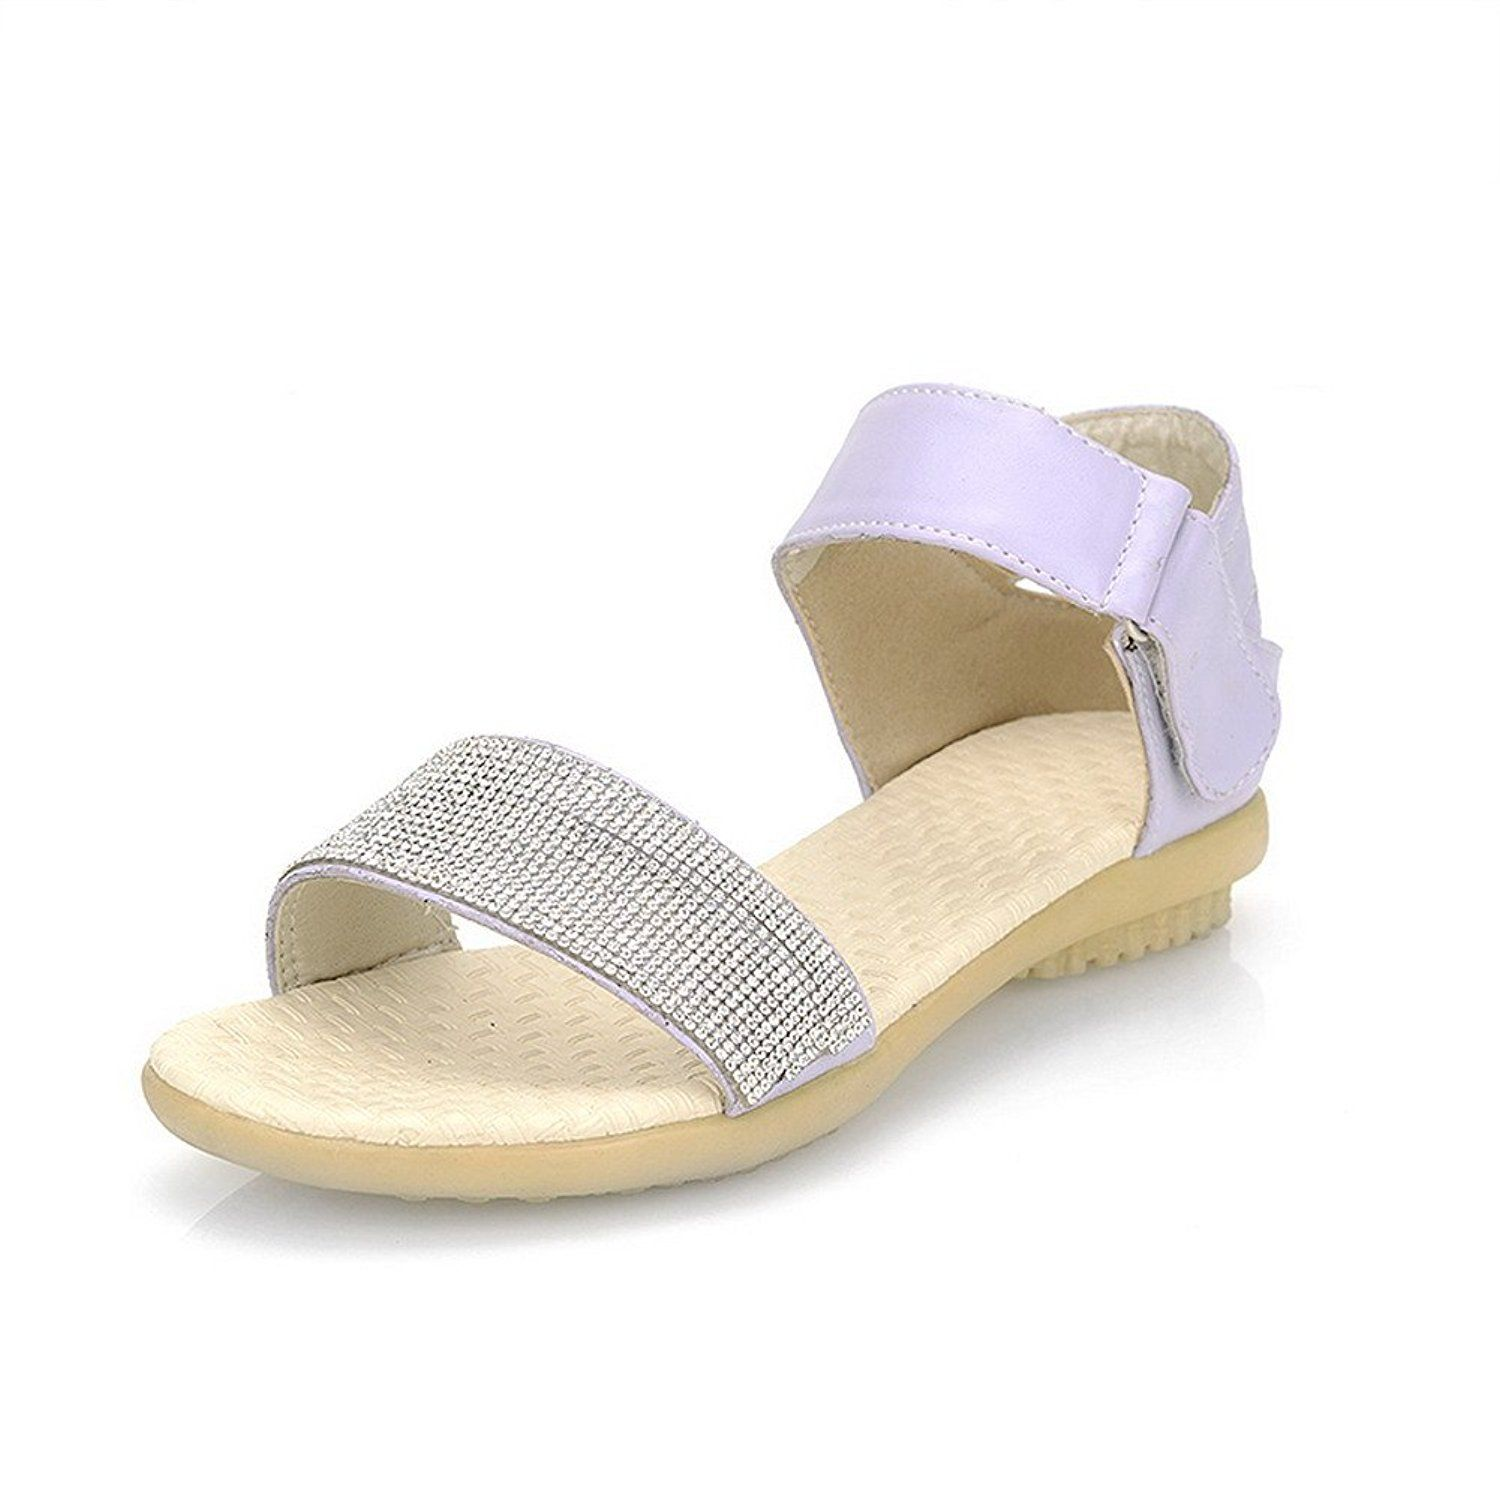 Womens Open Toe Soft Material PU Solid Sandals with Buckle